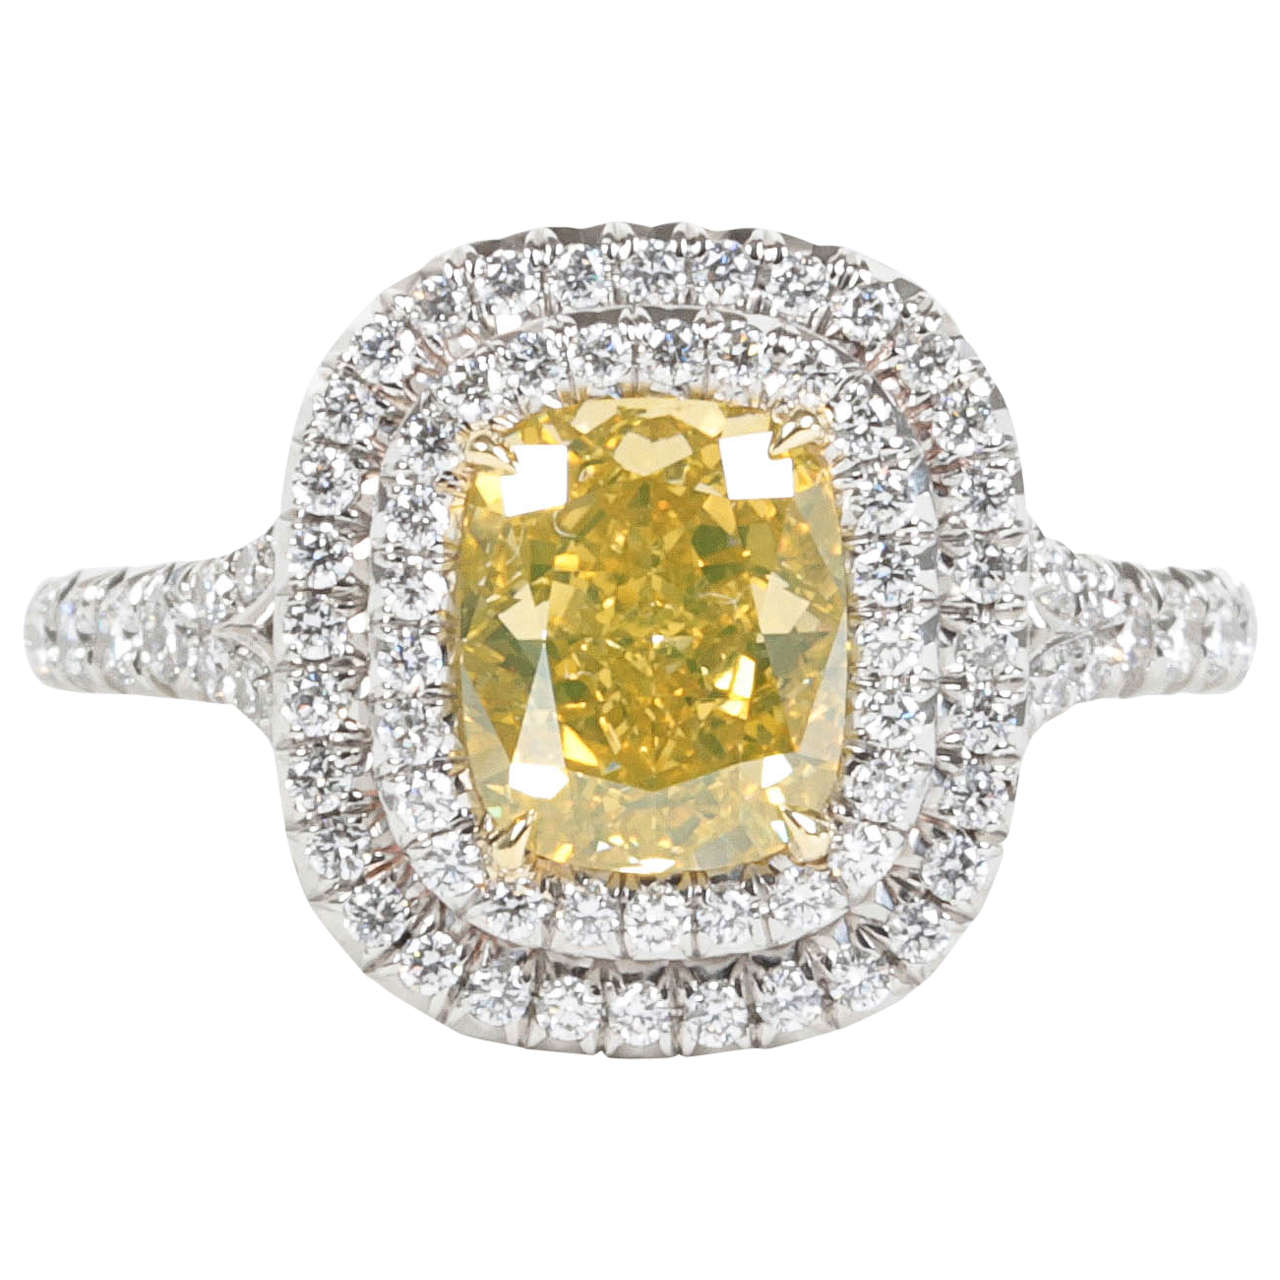 Rare Cushion Cut GIA Certified Vivid Yellow and White Diamond Platinum Ring For Sale